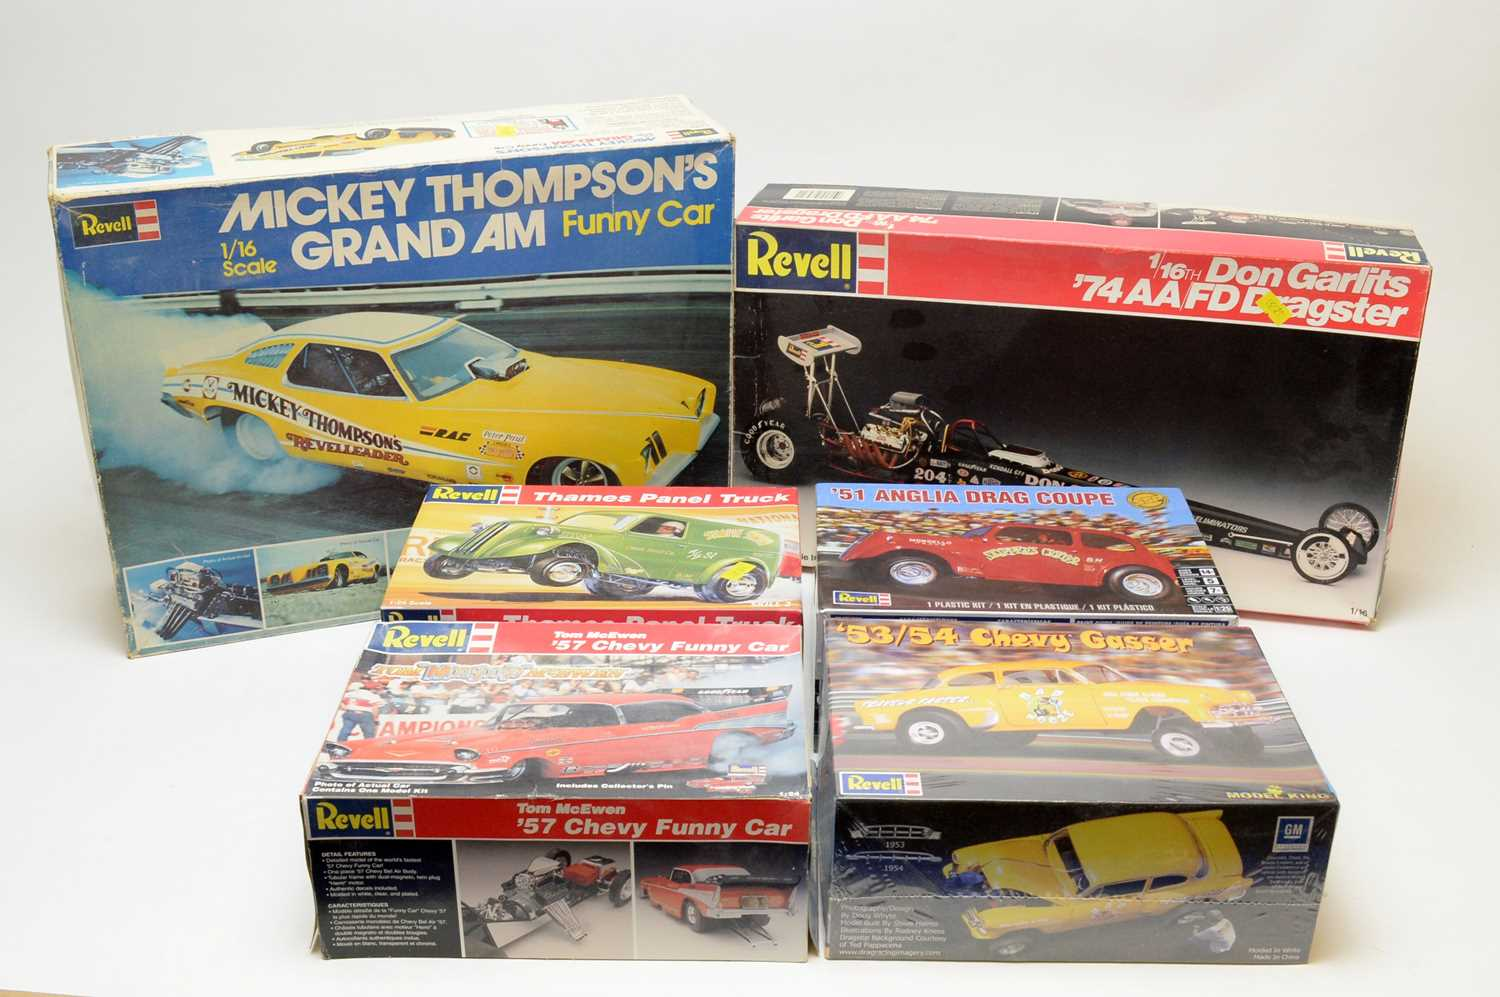 Boxed Revell scale model vehicles.